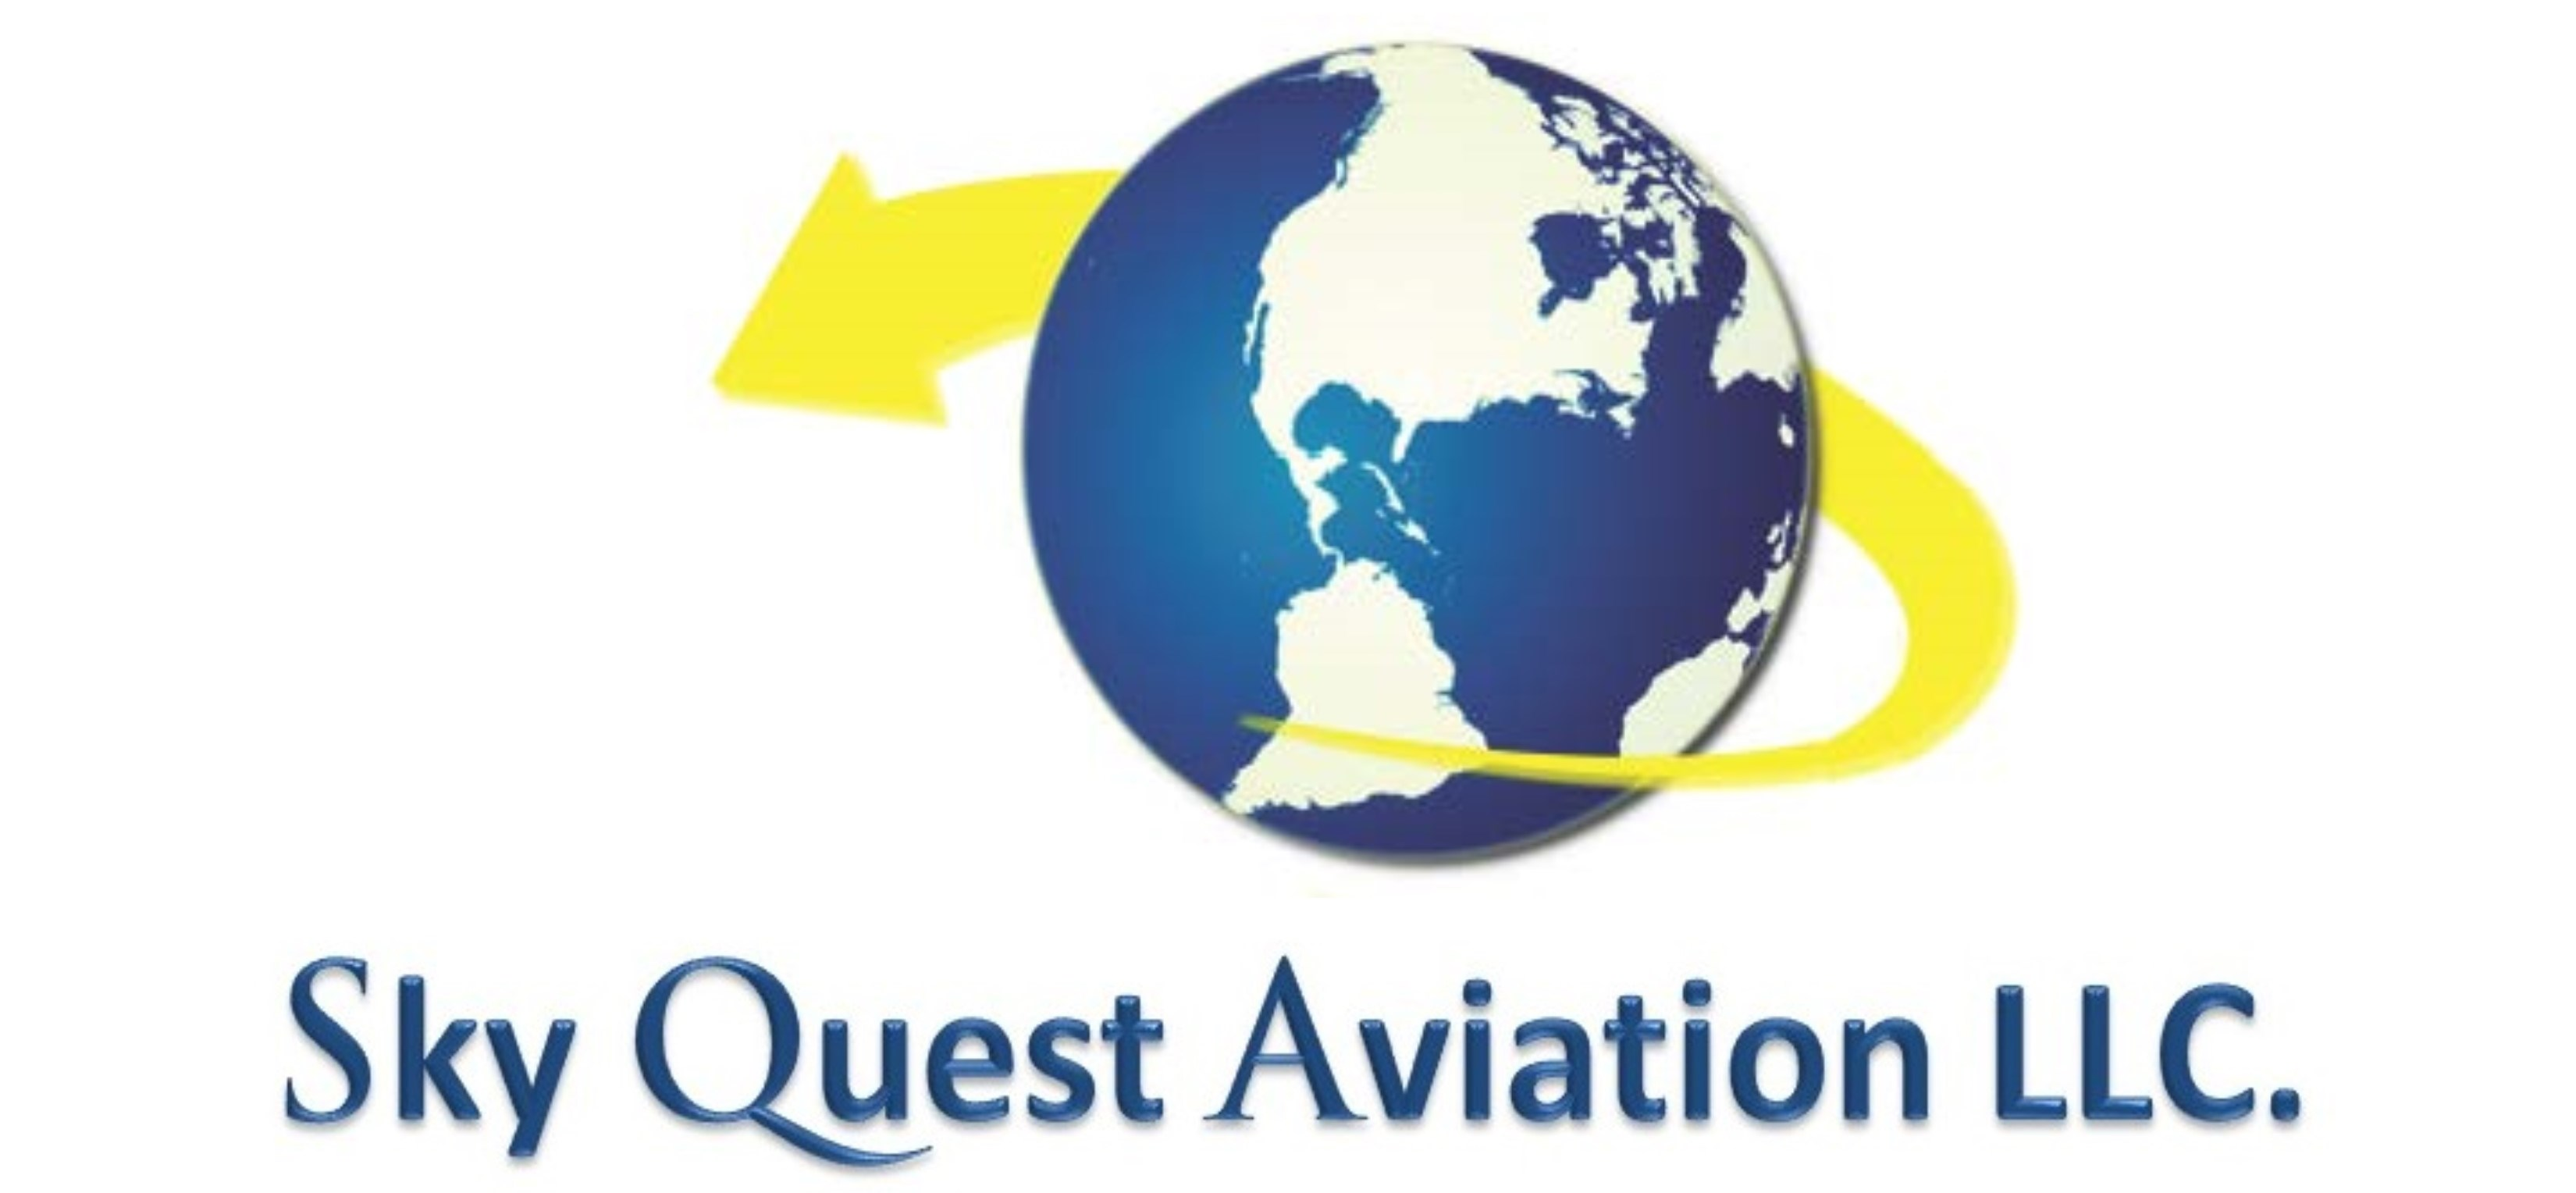 SkyQuest Aviation